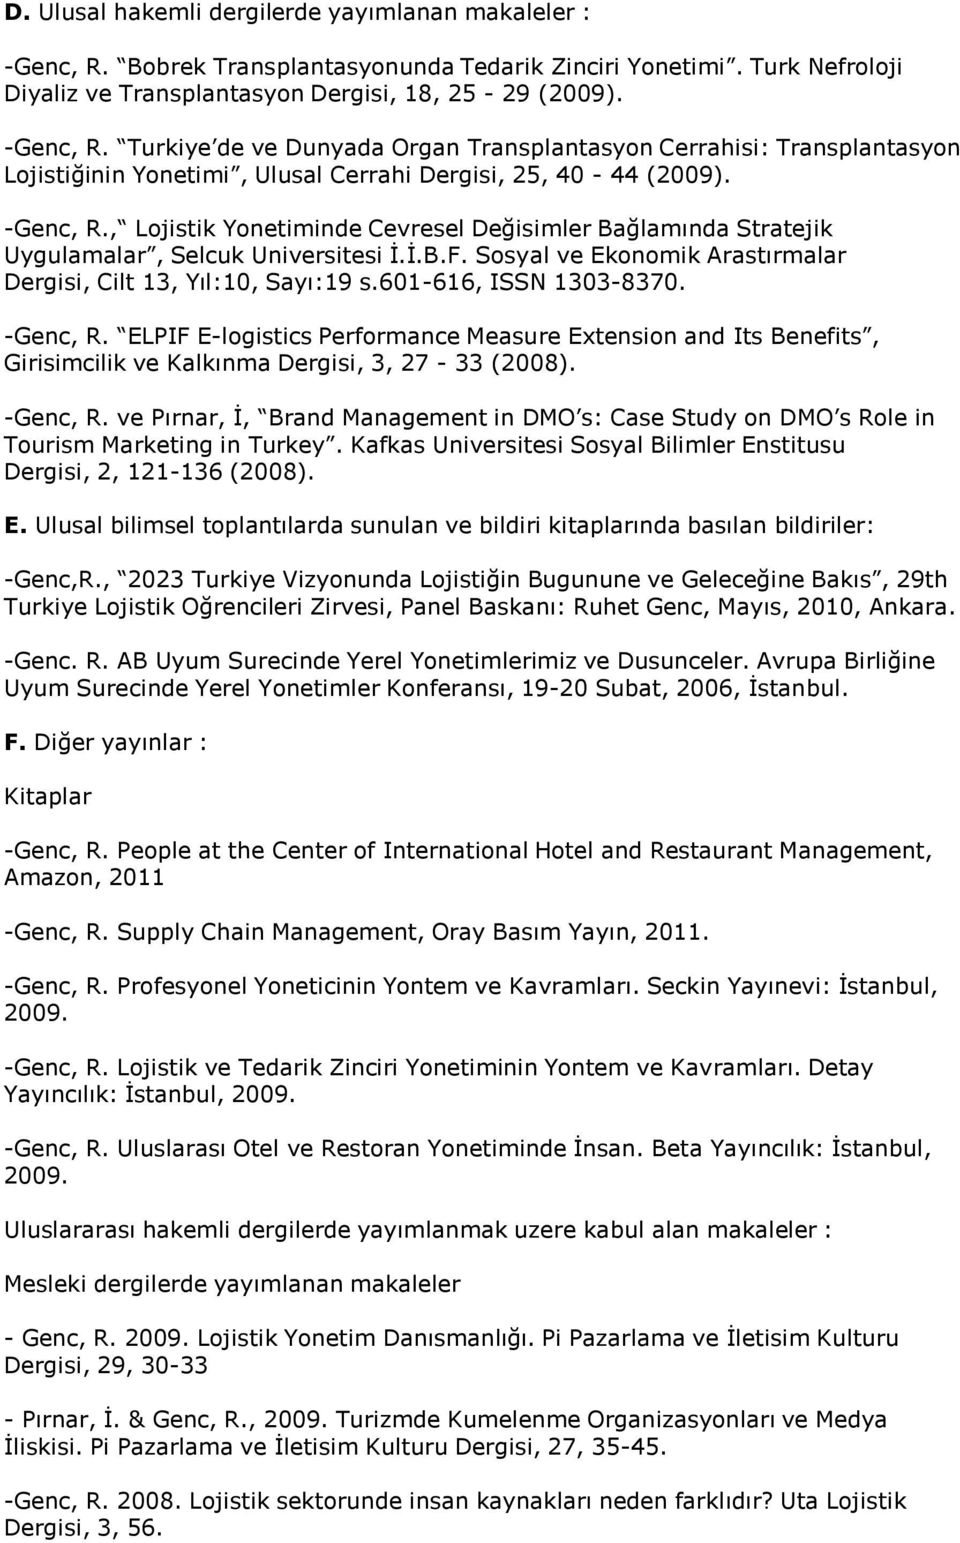 601-616, ISSN 1303-8370. -Genc, R. ELPIF E-logistics Performance Measure Extension and Its Benefits, Girisimcilik ve Kalkınma Dergisi, 3, 27-33 (2008). -Genc, R. ve Pırnar, İ, Brand Management in DMO s: Case Study on DMO s Role in Tourism Marketing in Turkey.